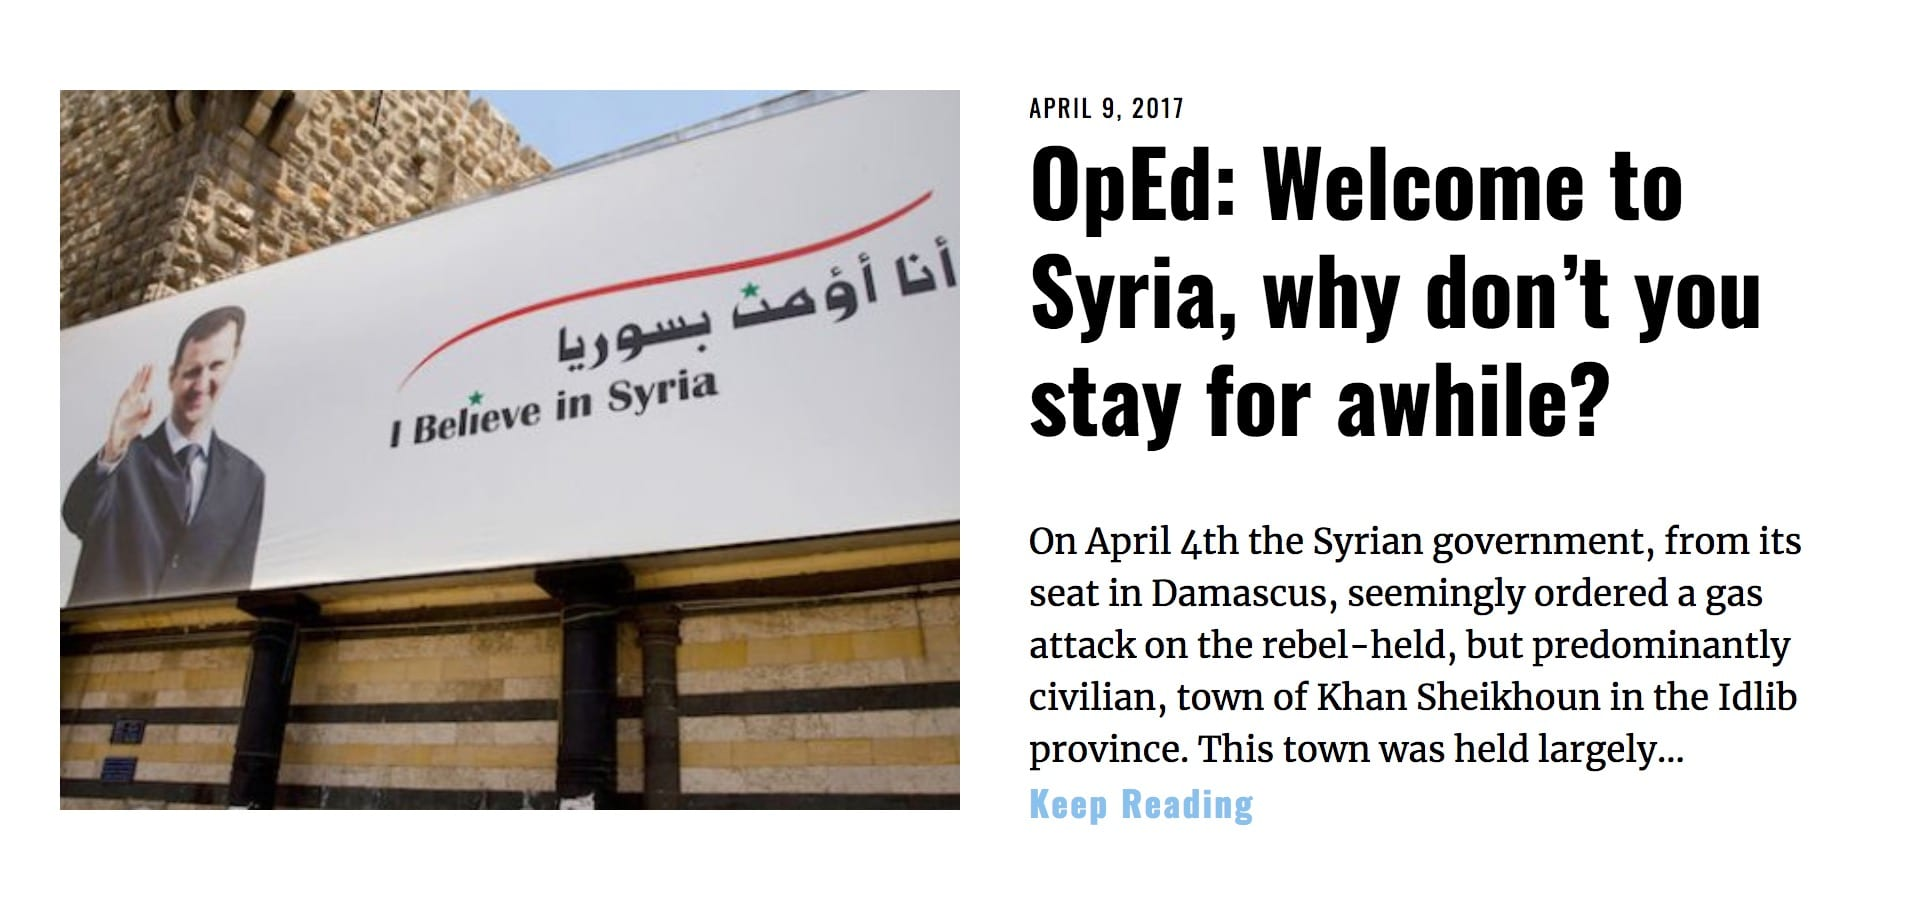 Image Lima Charlie News Headline Welcome to Syria APR 6 2017